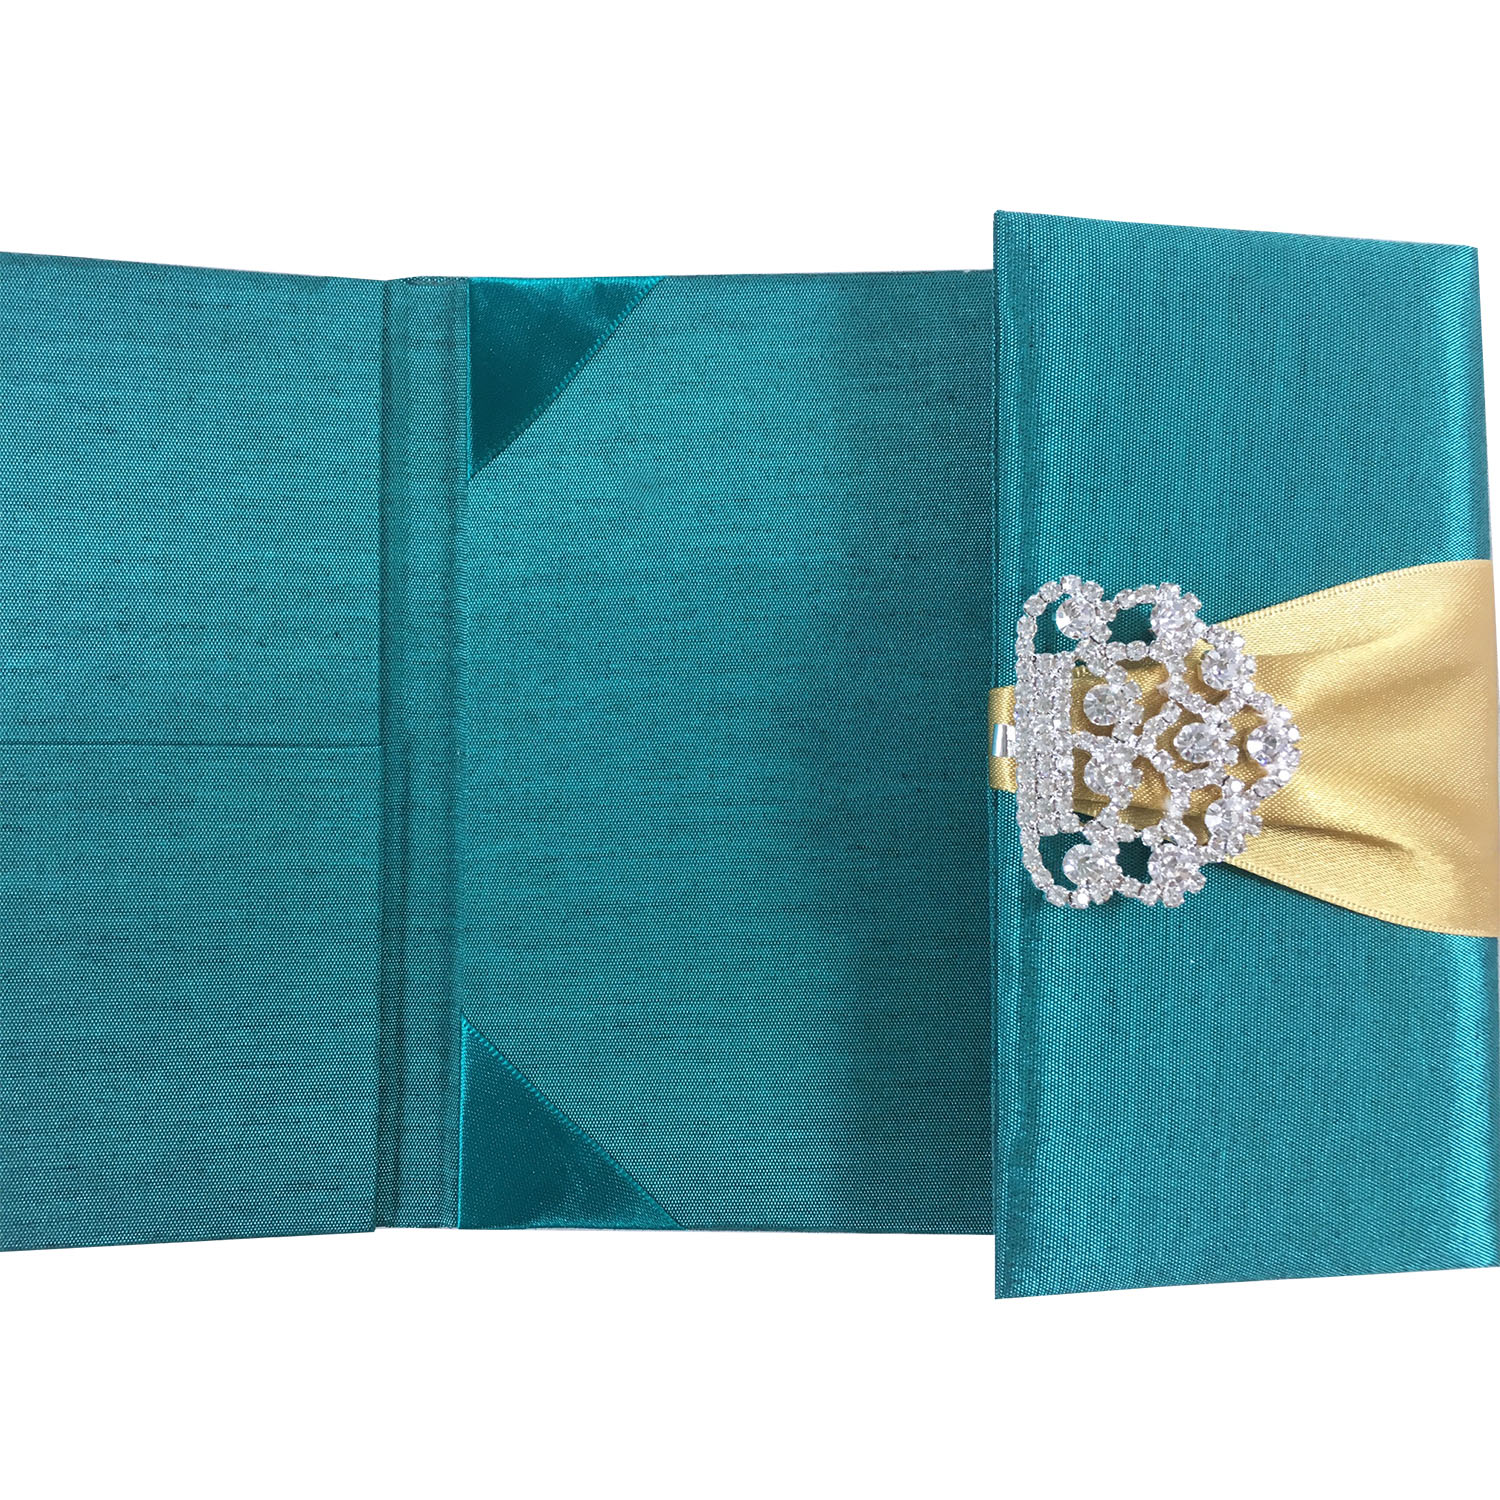 Emerald green silk wedding invitation folder